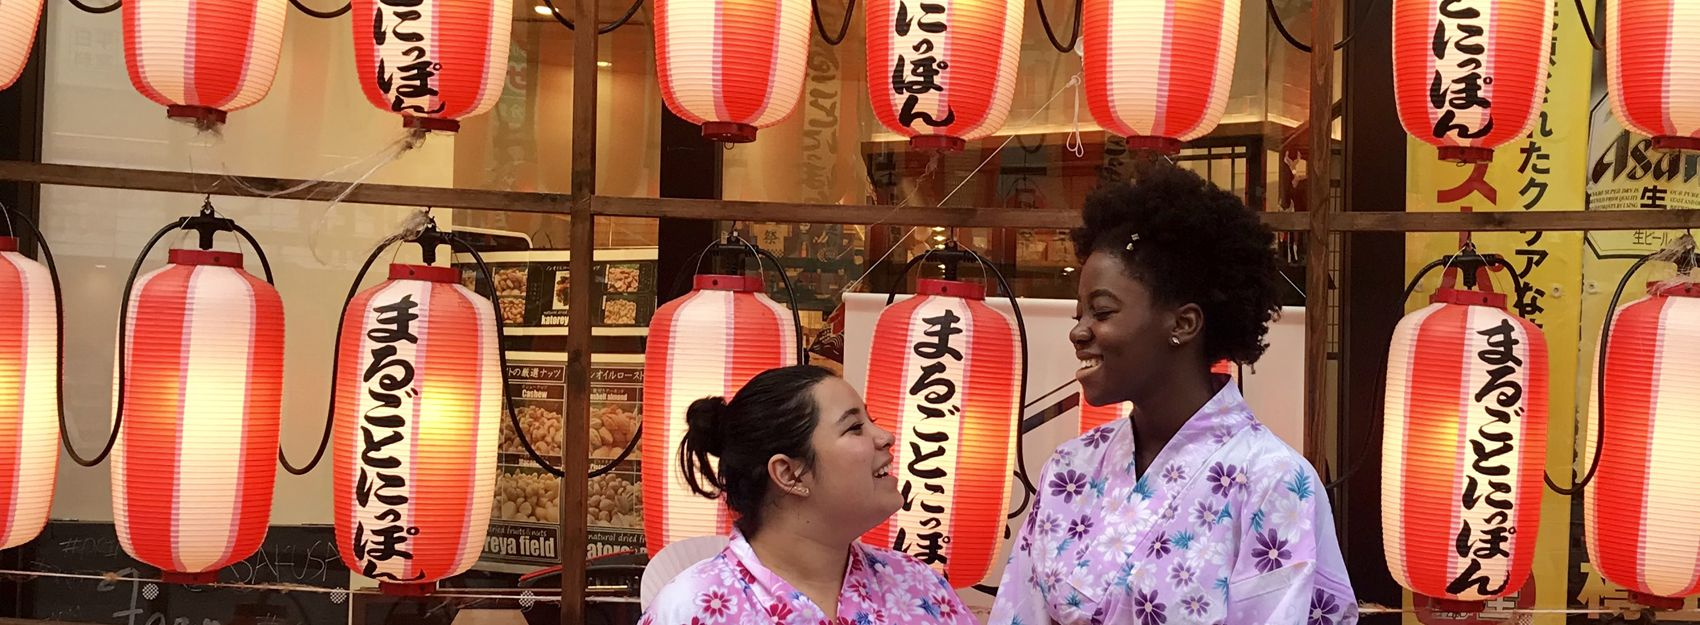 two Japan study abroad students in kimonos in front of lantarns